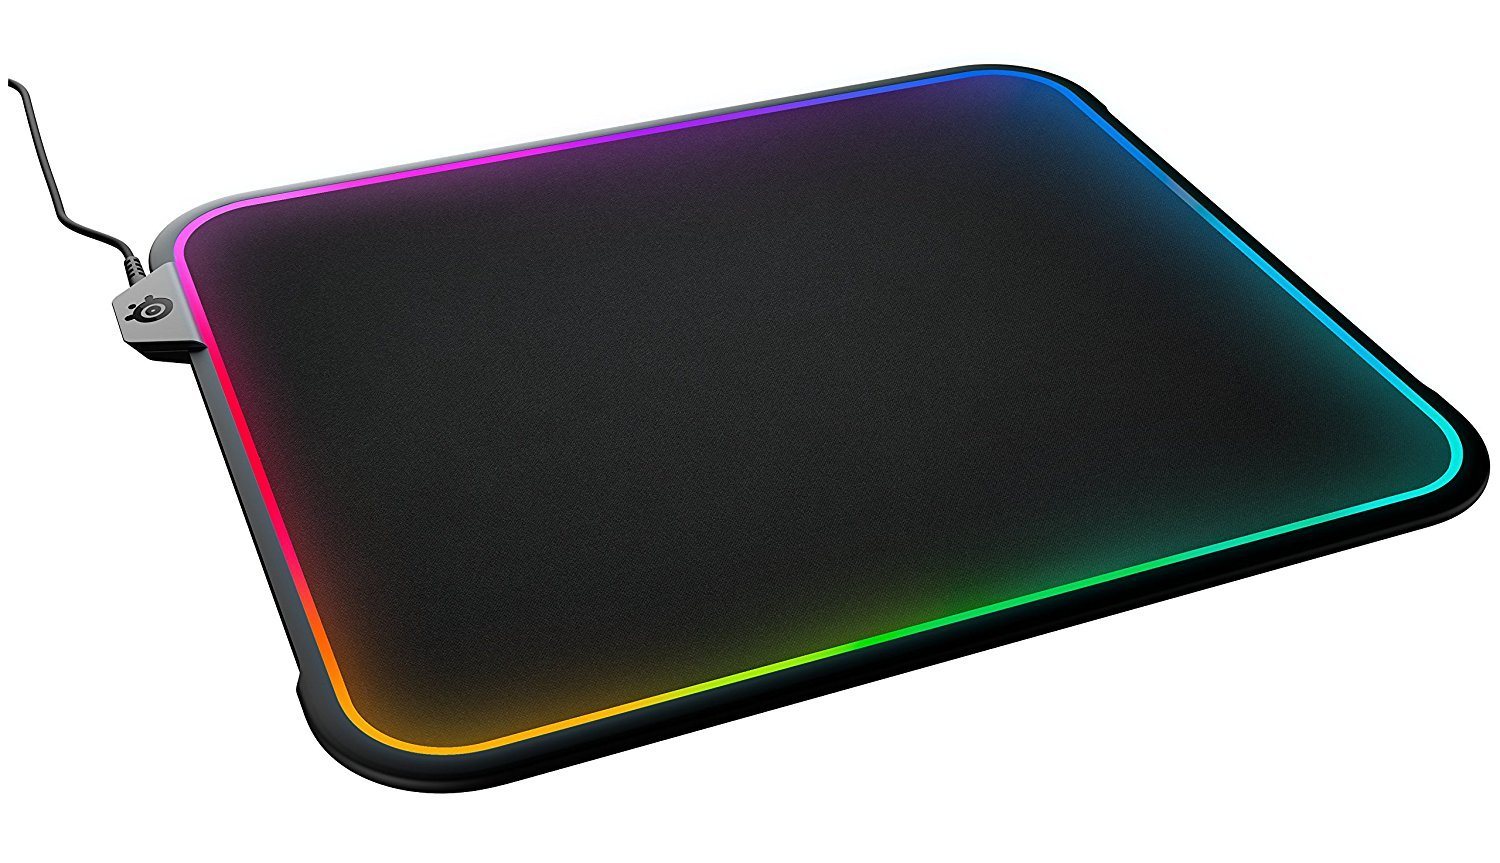 Steelseries Qck Prism Mouse Pad In Stock Buy Now At Mighty Mousepad Black For Image